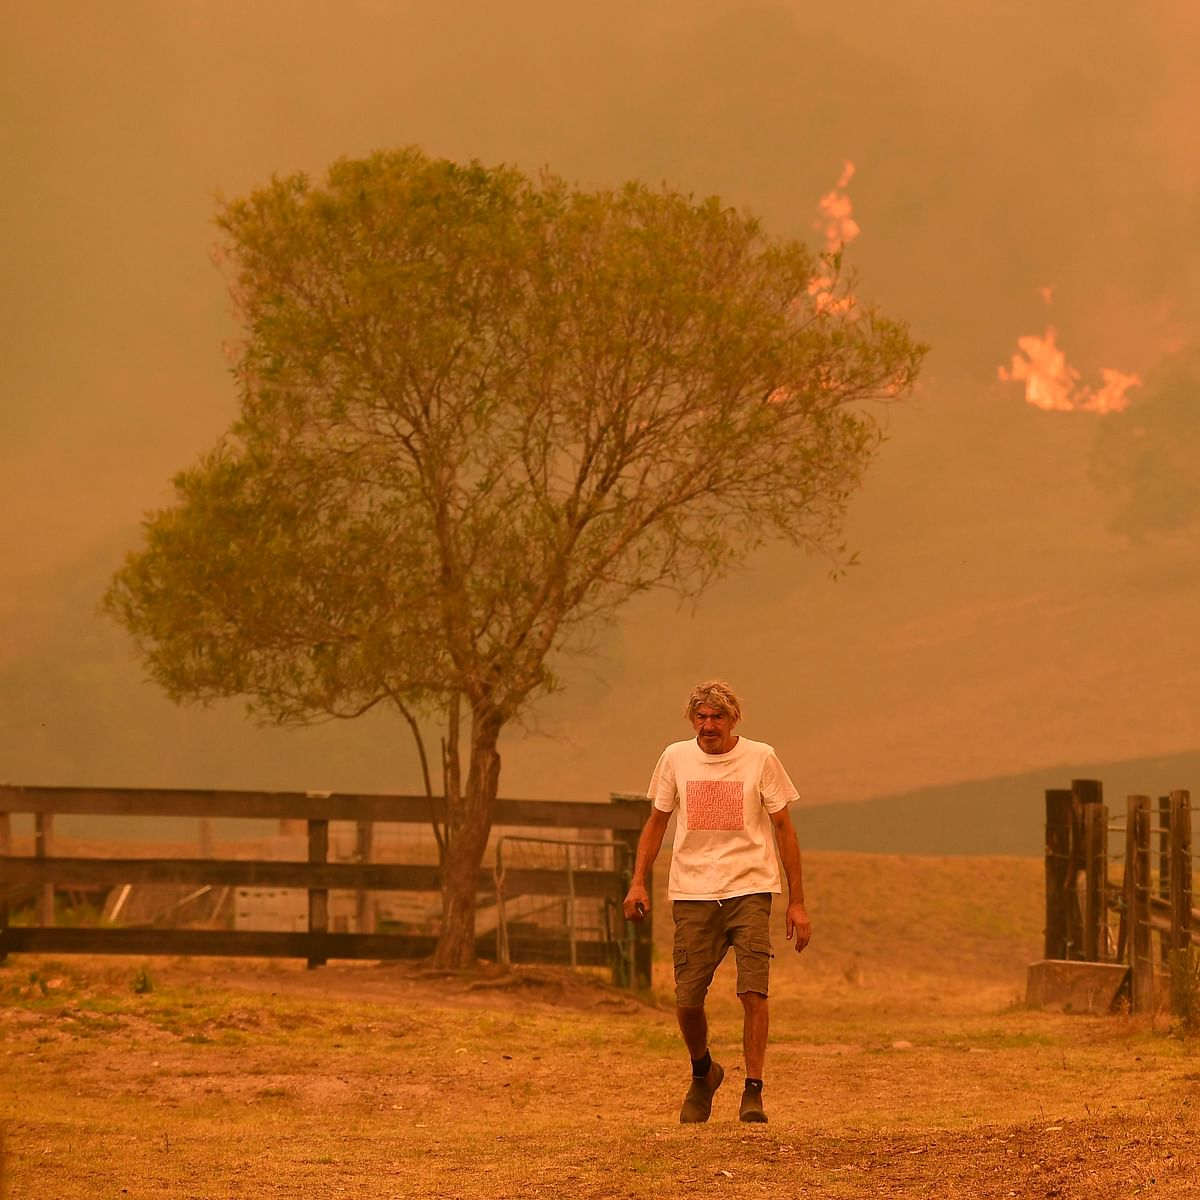 Australia bushfires: Death toll raises to 4